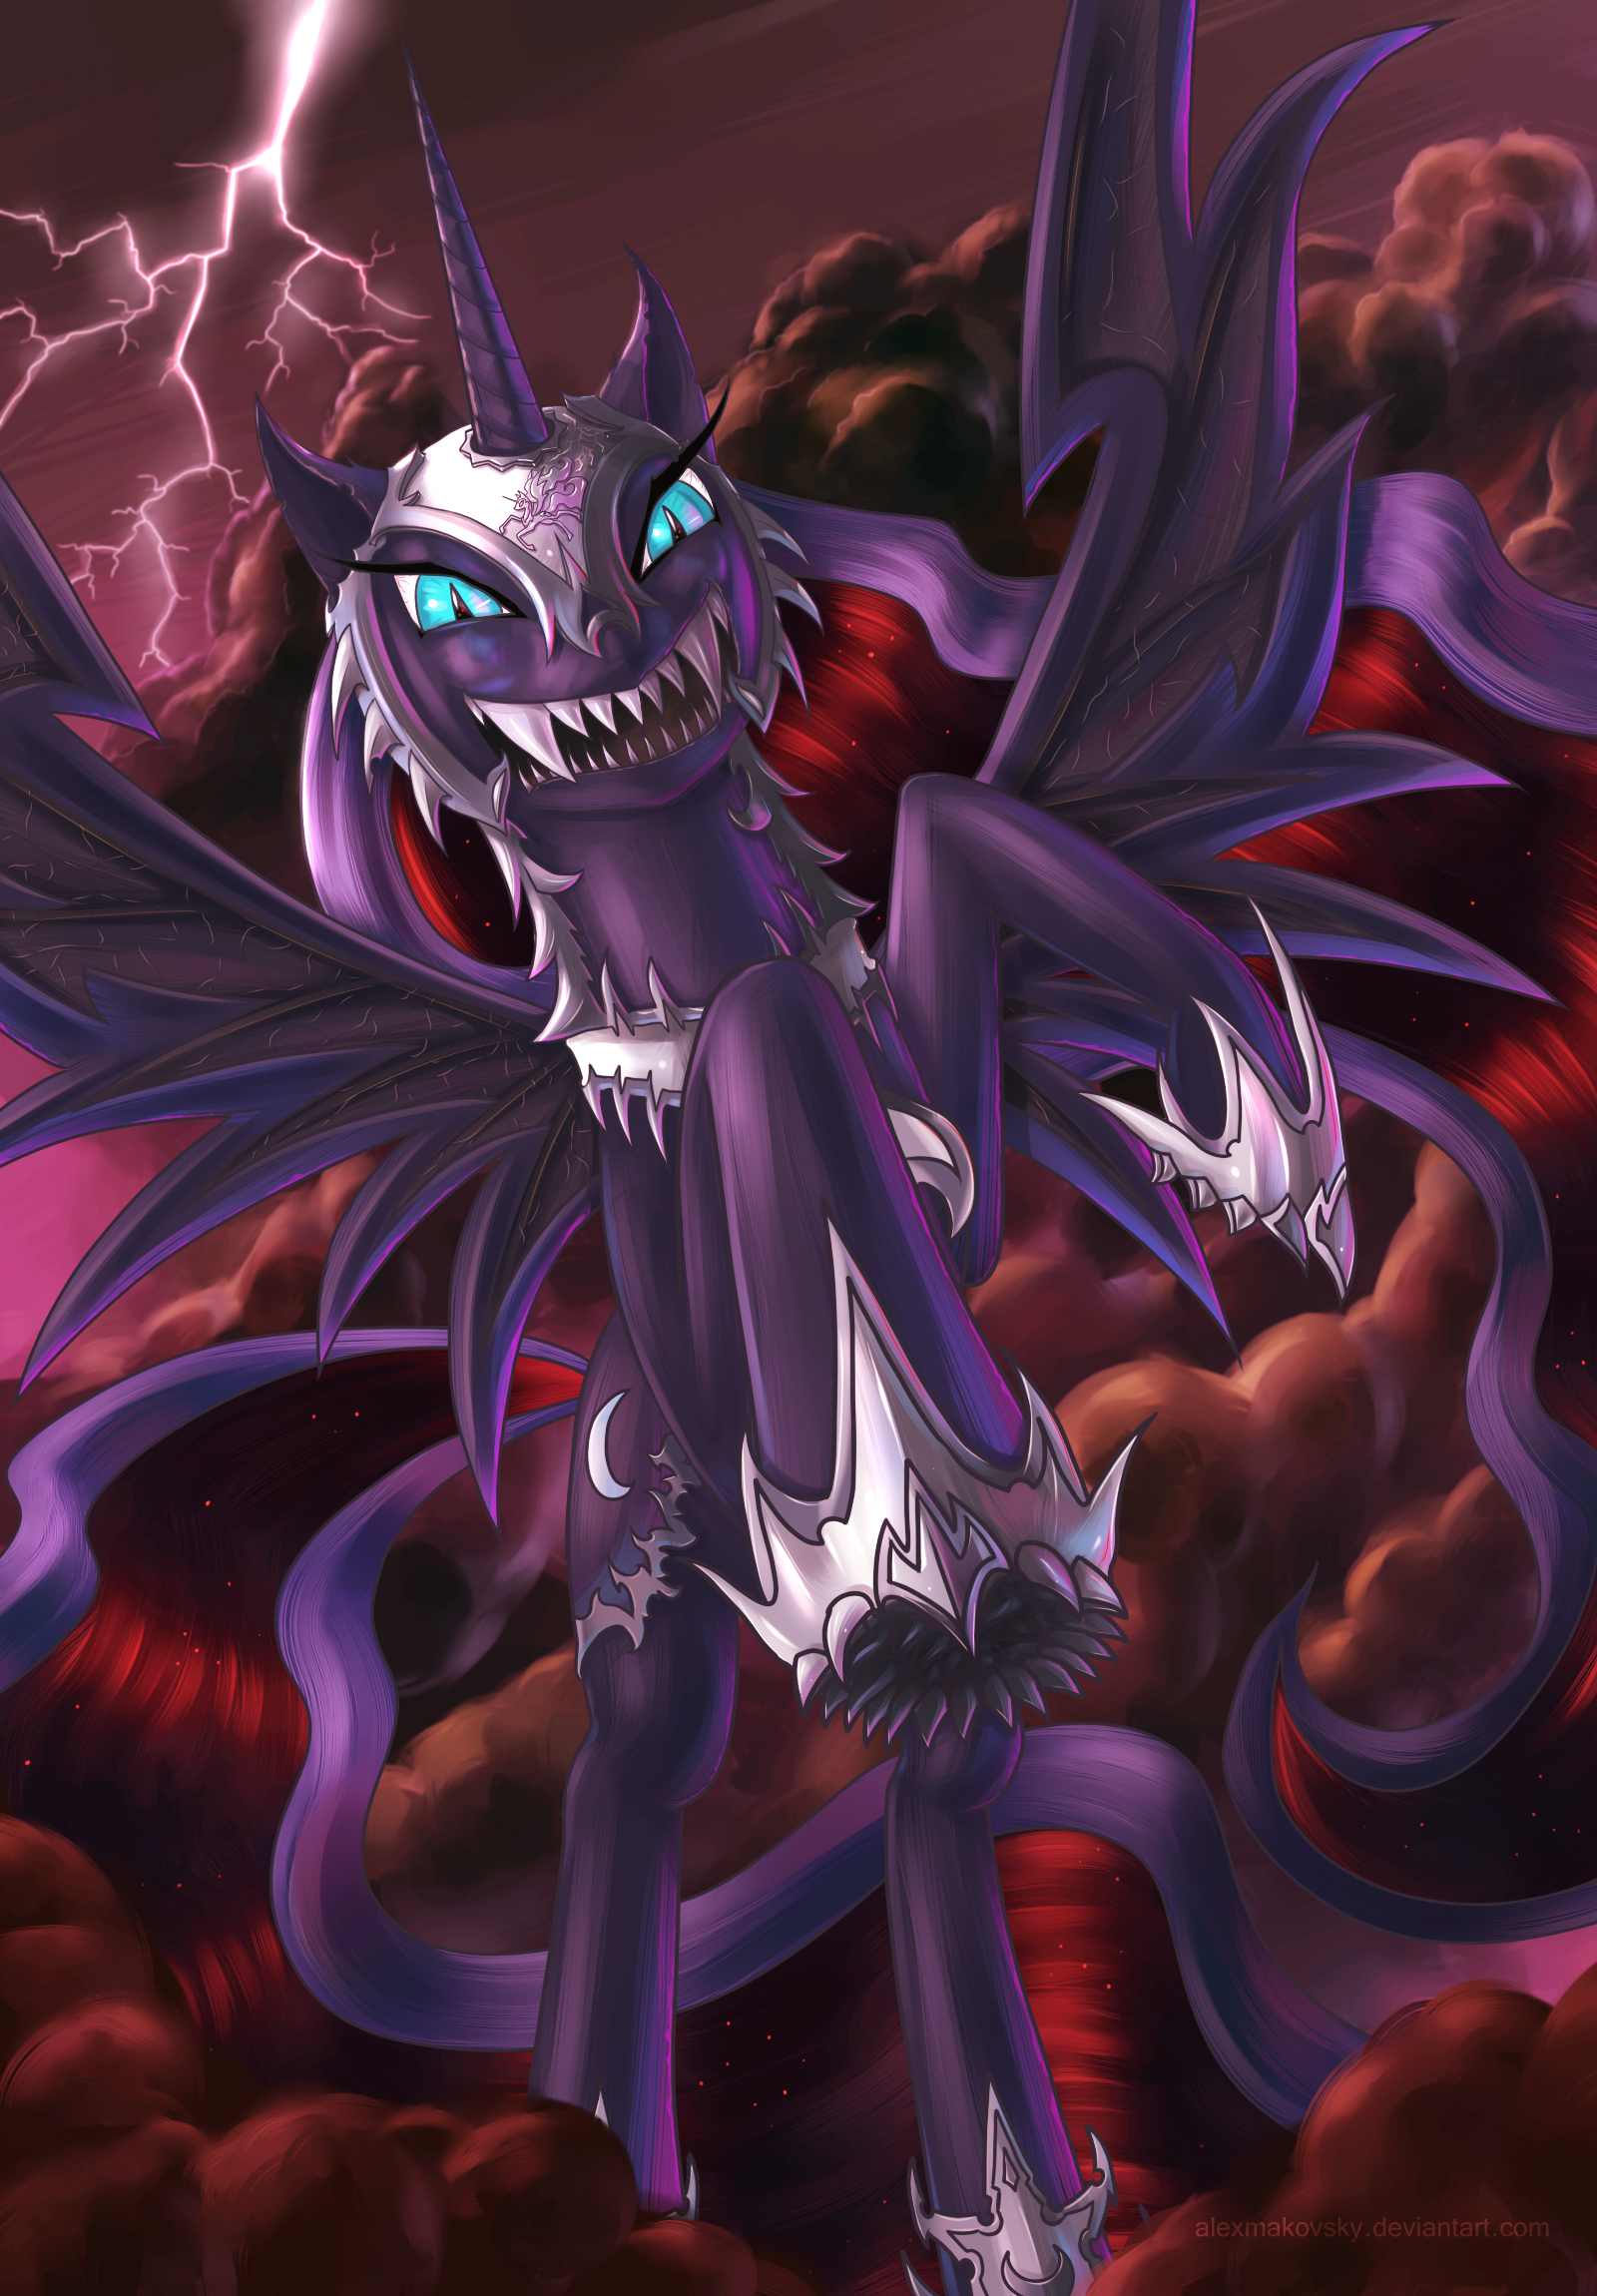 nightmare moon by alexmakovsky on nightmare moon by alexmakovsky nightmare moon by alexmakovsky